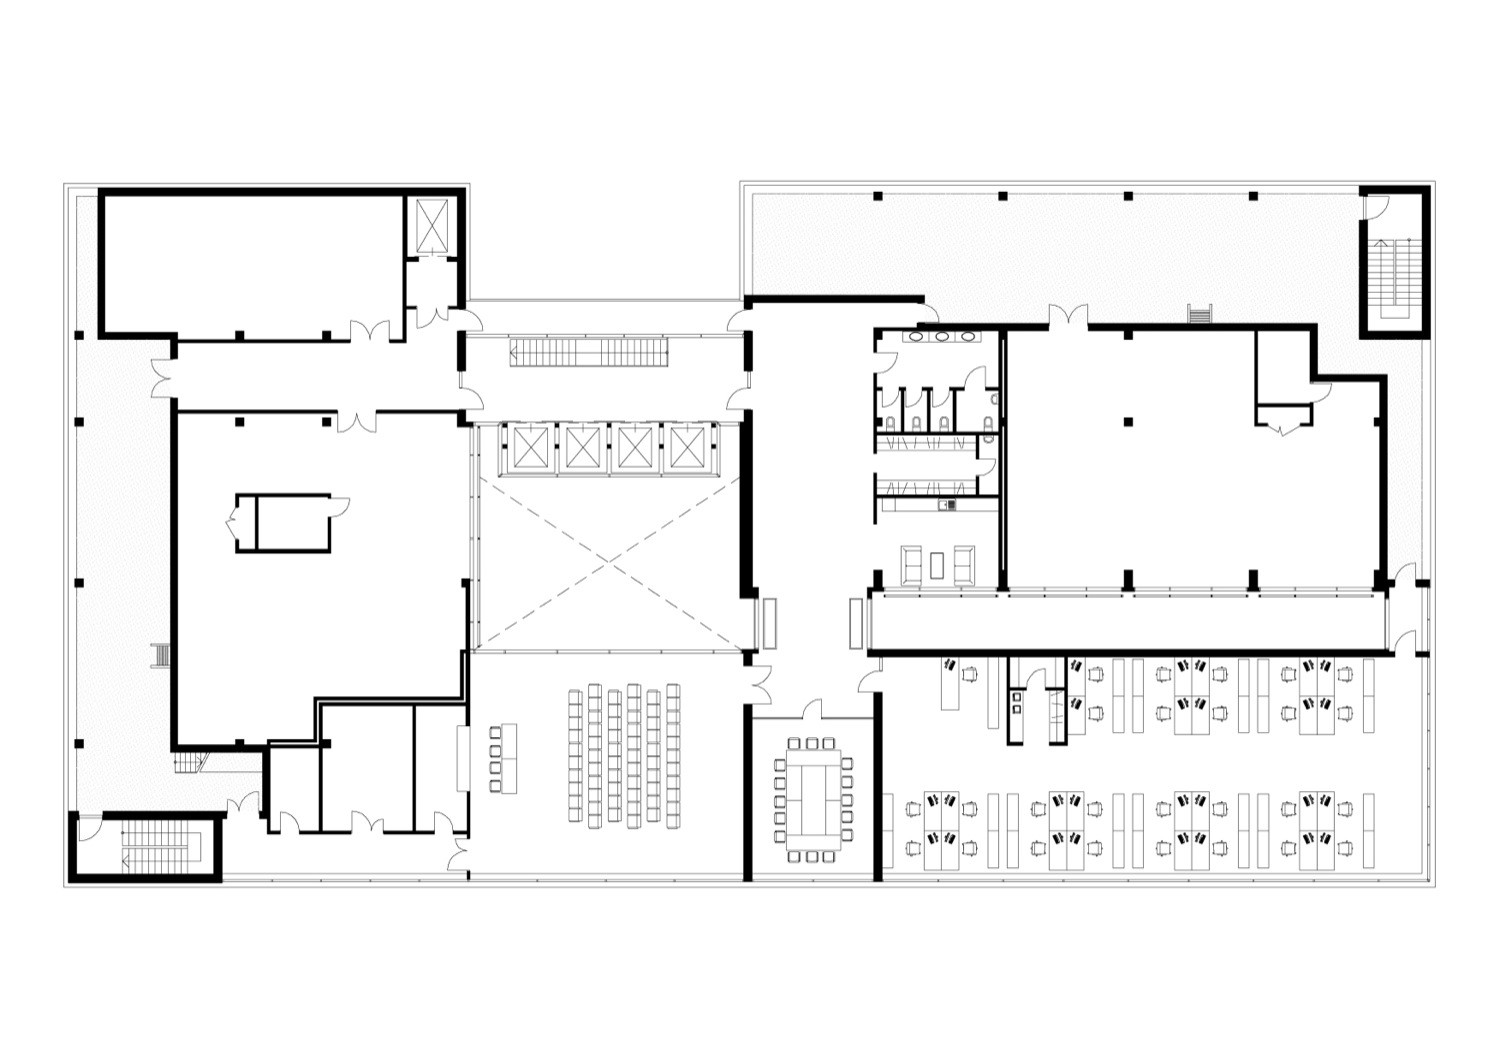 gallery of dnb nord office building audrius ambrasas architects 24. Black Bedroom Furniture Sets. Home Design Ideas